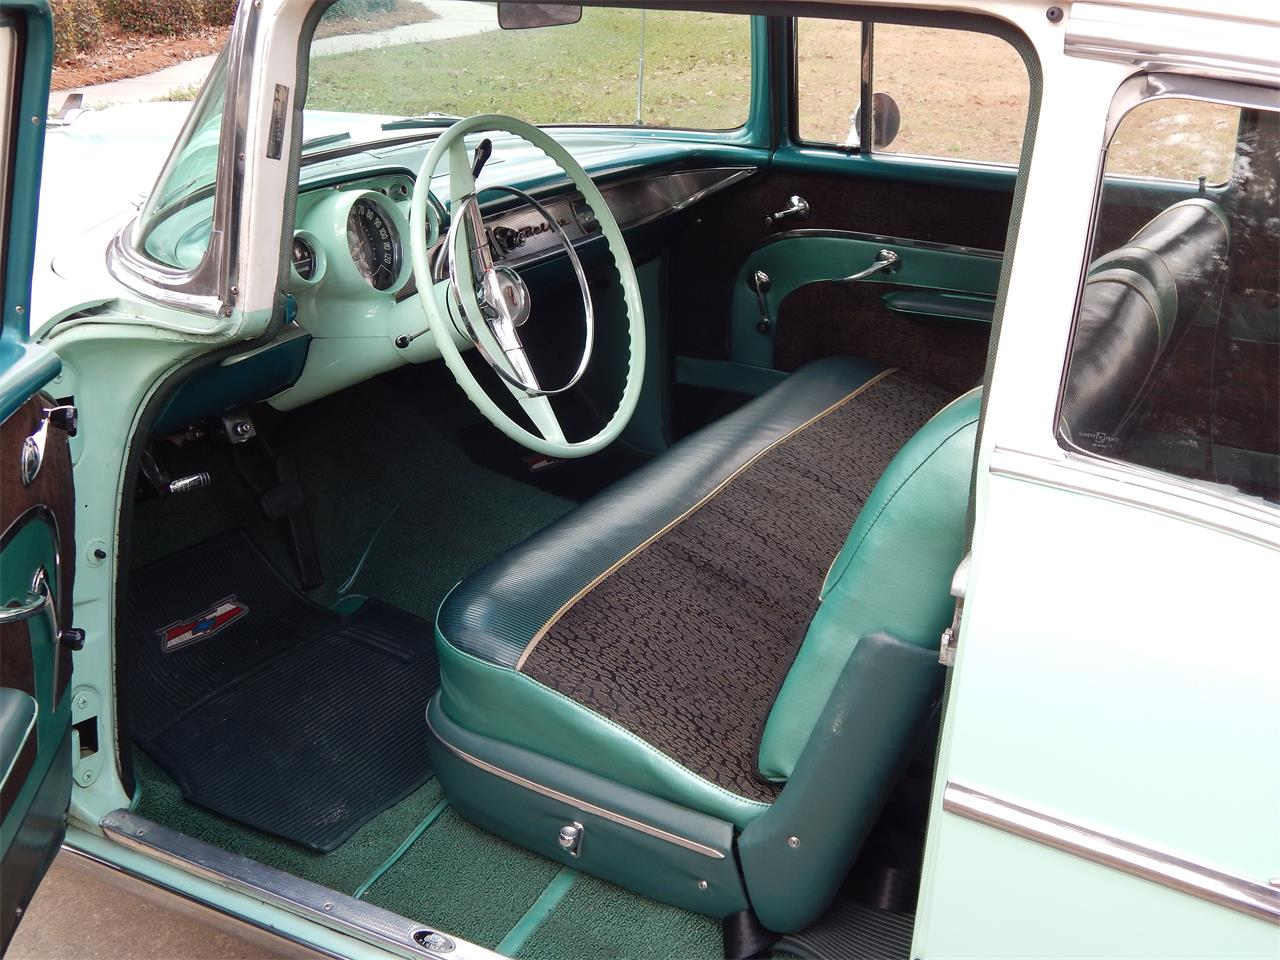 1957 Chevrolet Bel Air for sale in Online, Online Auction – photo 9